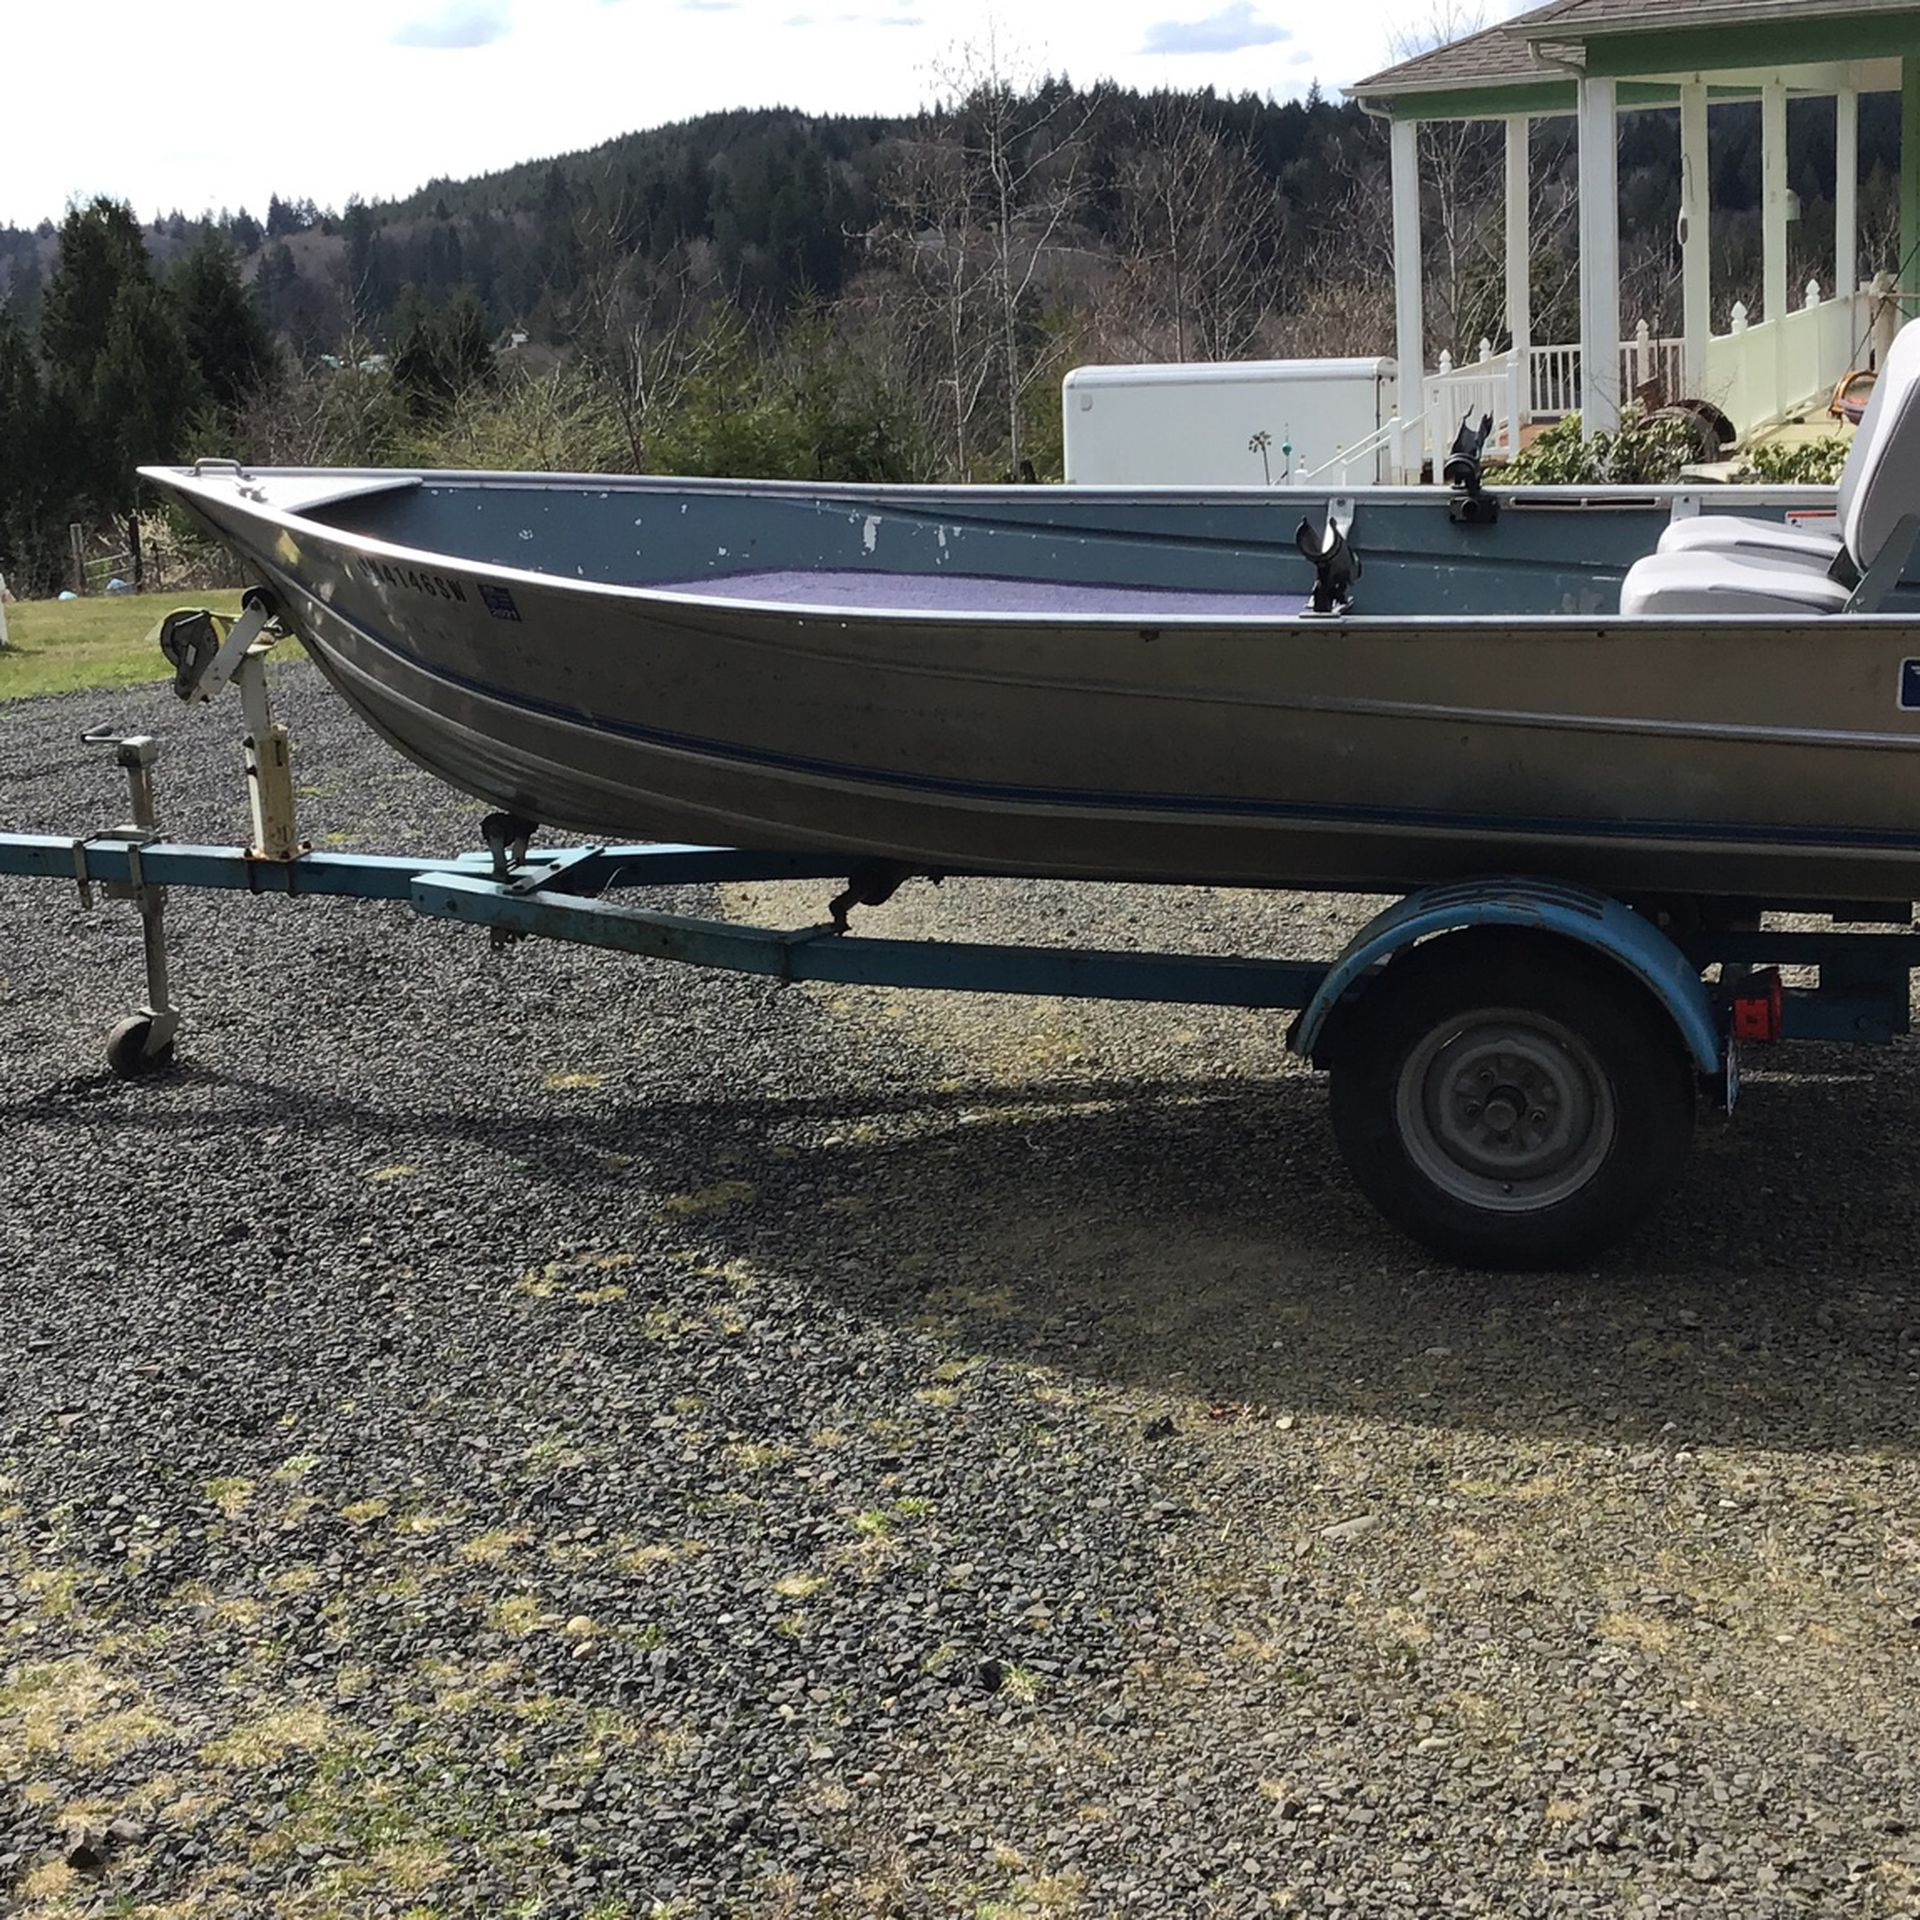 Photo 14 Foot Westcoaster Boat With Trailer. 2 New Seats, New Casting Deck with carpet, 2 rod holders, 2 oars. New Bearings On trailer. No leaks,.